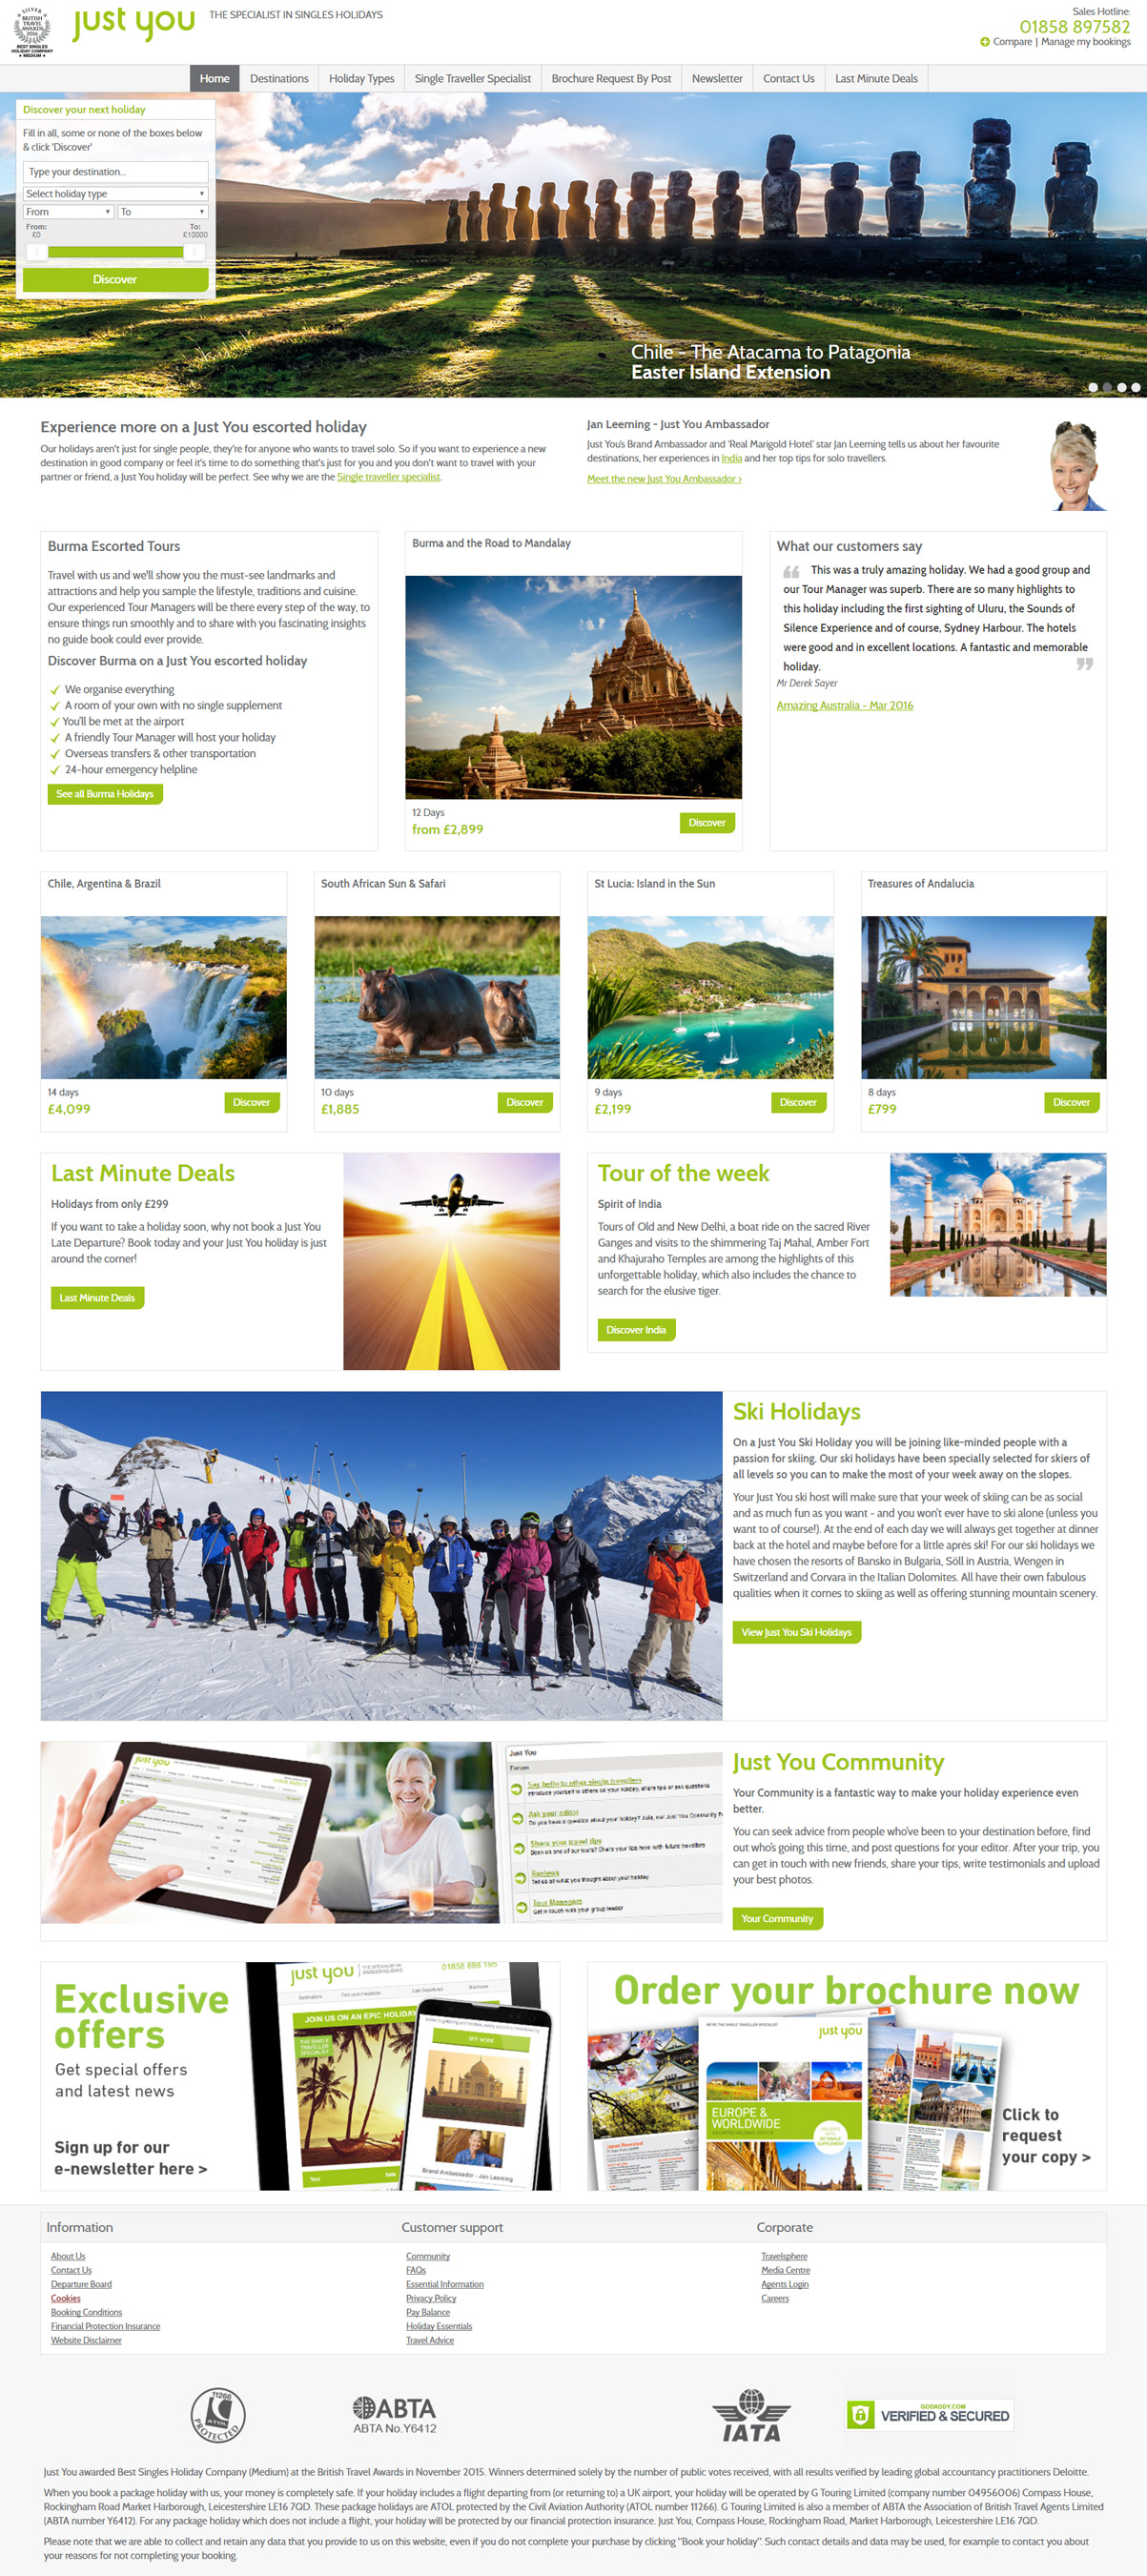 Just You homepage - Site widening